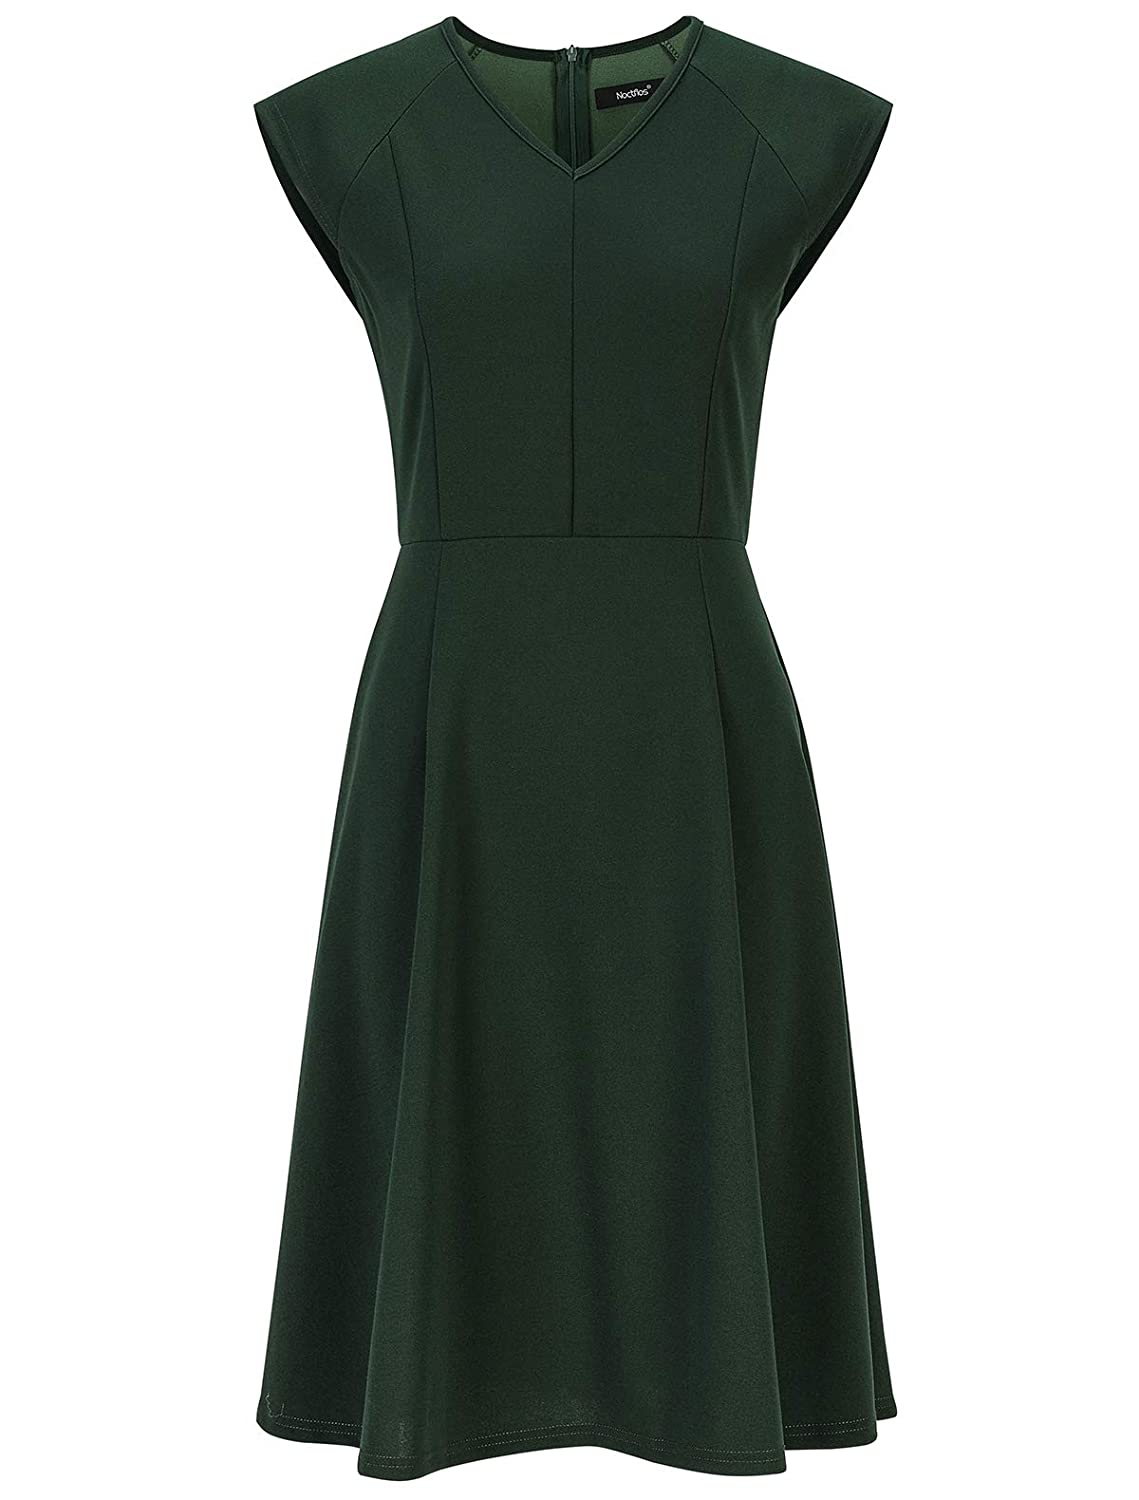 500 Vintage Style Dresses for Sale | Vintage Inspired Dresses Noctflos Women's V Neck Cap Sleeve Fit and Flare Swing Dresses for Cocktail Party Work $27.89 AT vintagedancer.com